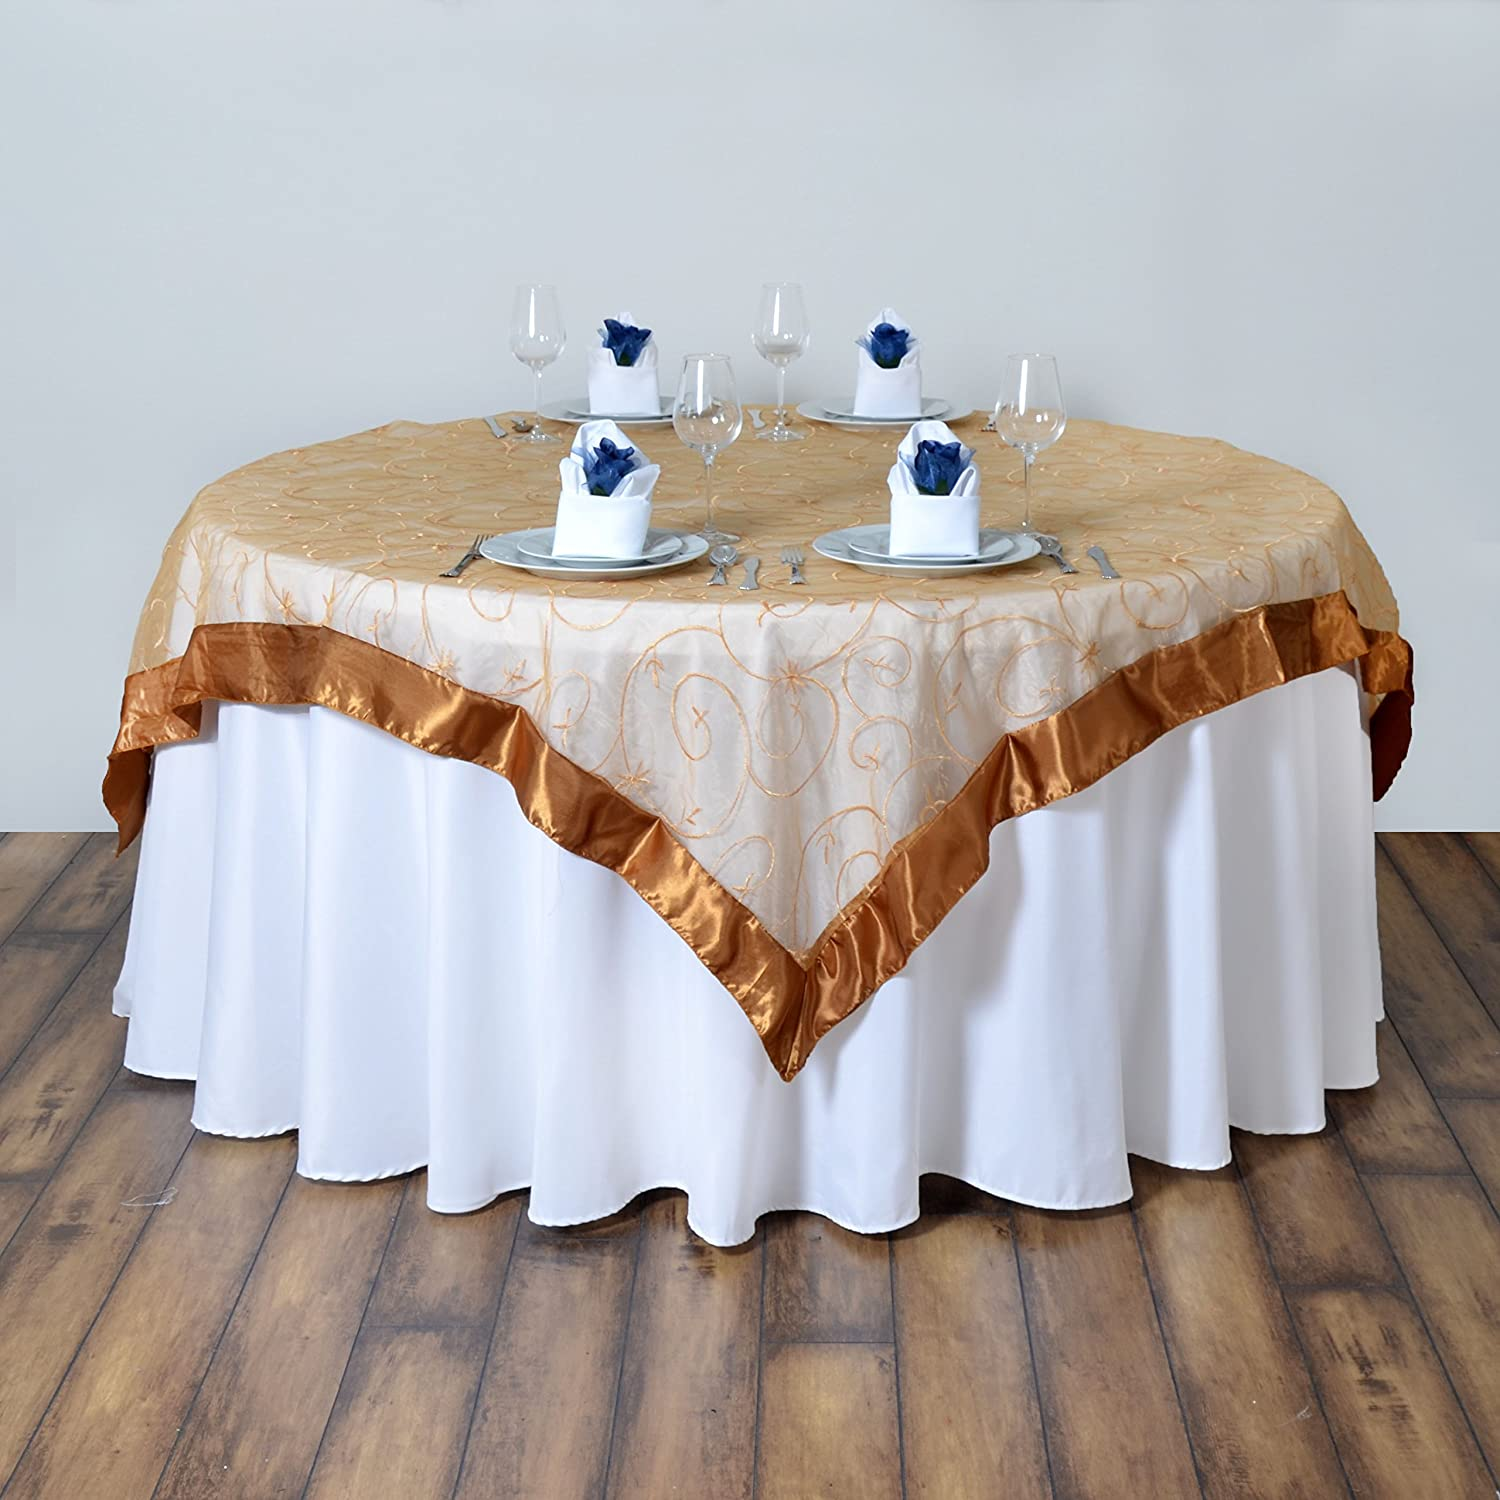 Amazon Com Balsacircle 72x72 Inch Gold Embroidered Sheer Organza Table Overlays Wedding Reception Party Catering Linens Decorations Home Kitchen